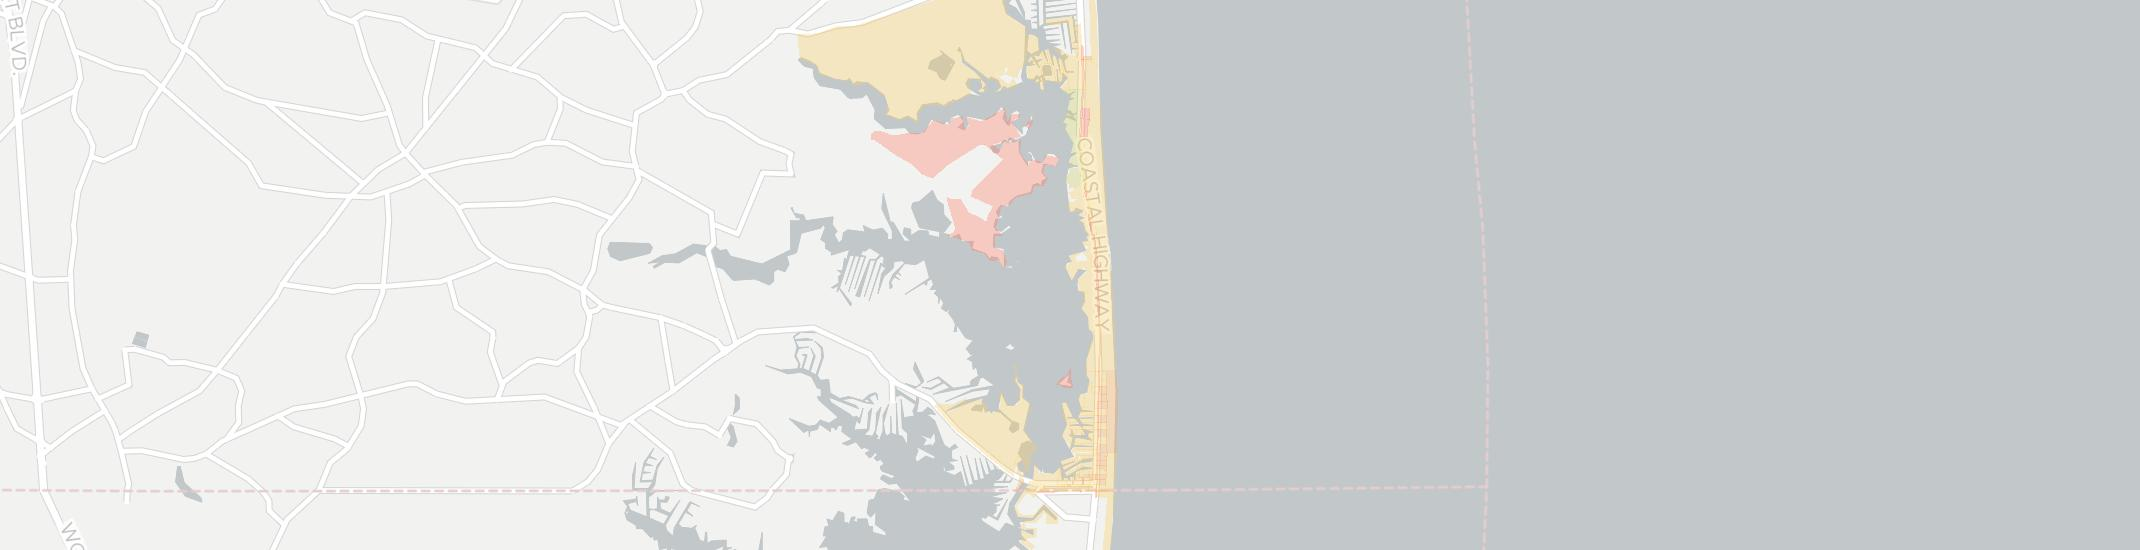 Fenwick Island Internet Competition Map. Click for interactive map.